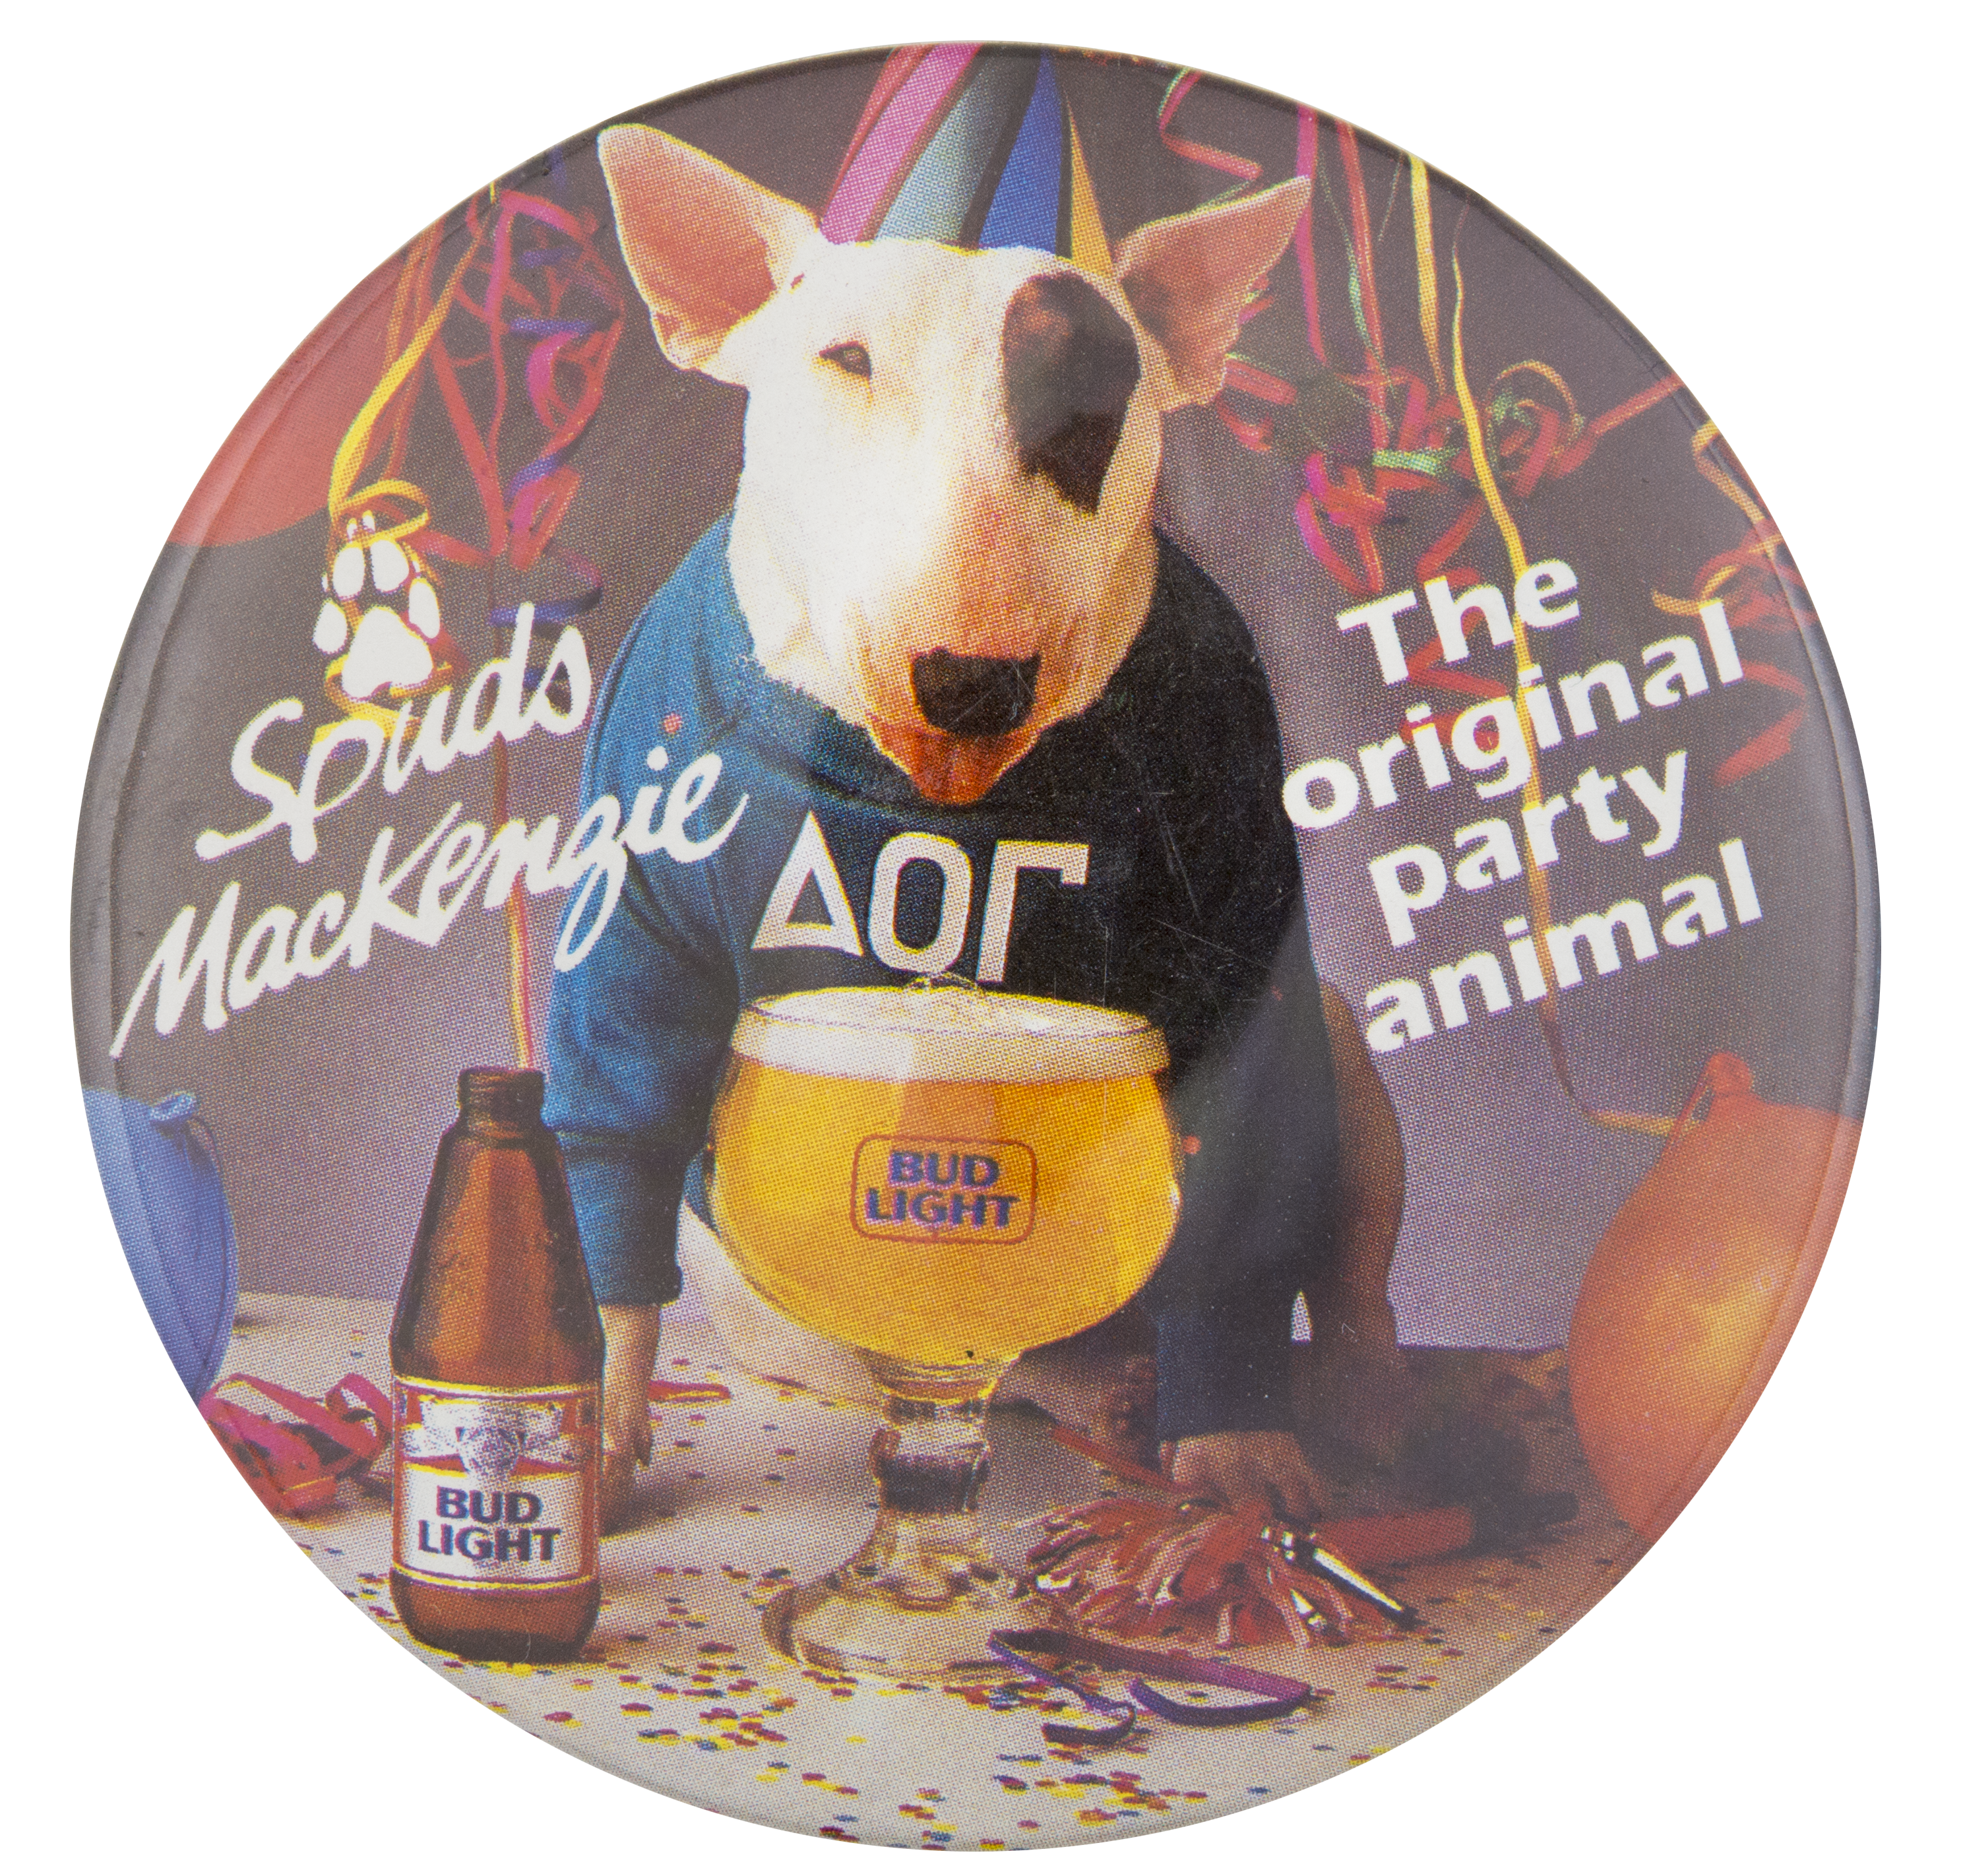 bud light spuds mackenzie party animal busy beaver button museum